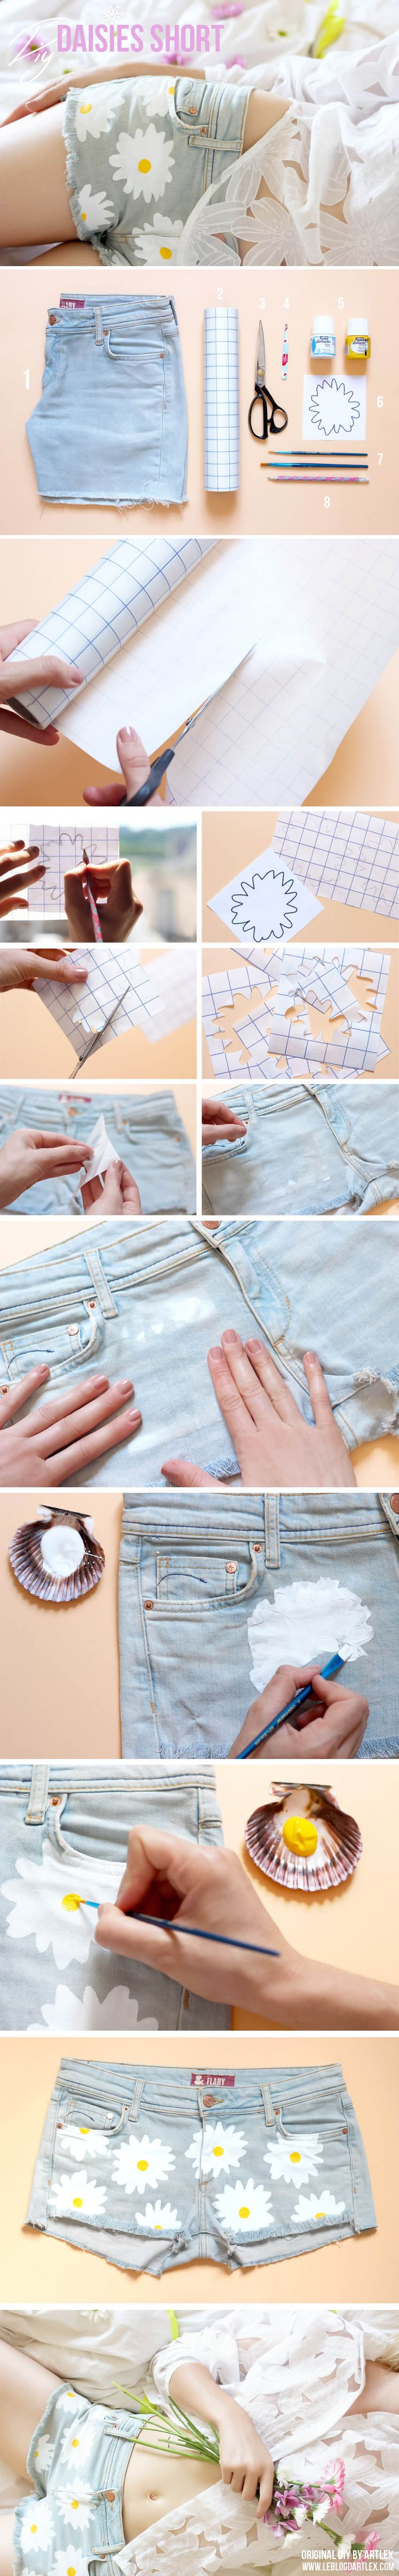 DIY, short de margaridas